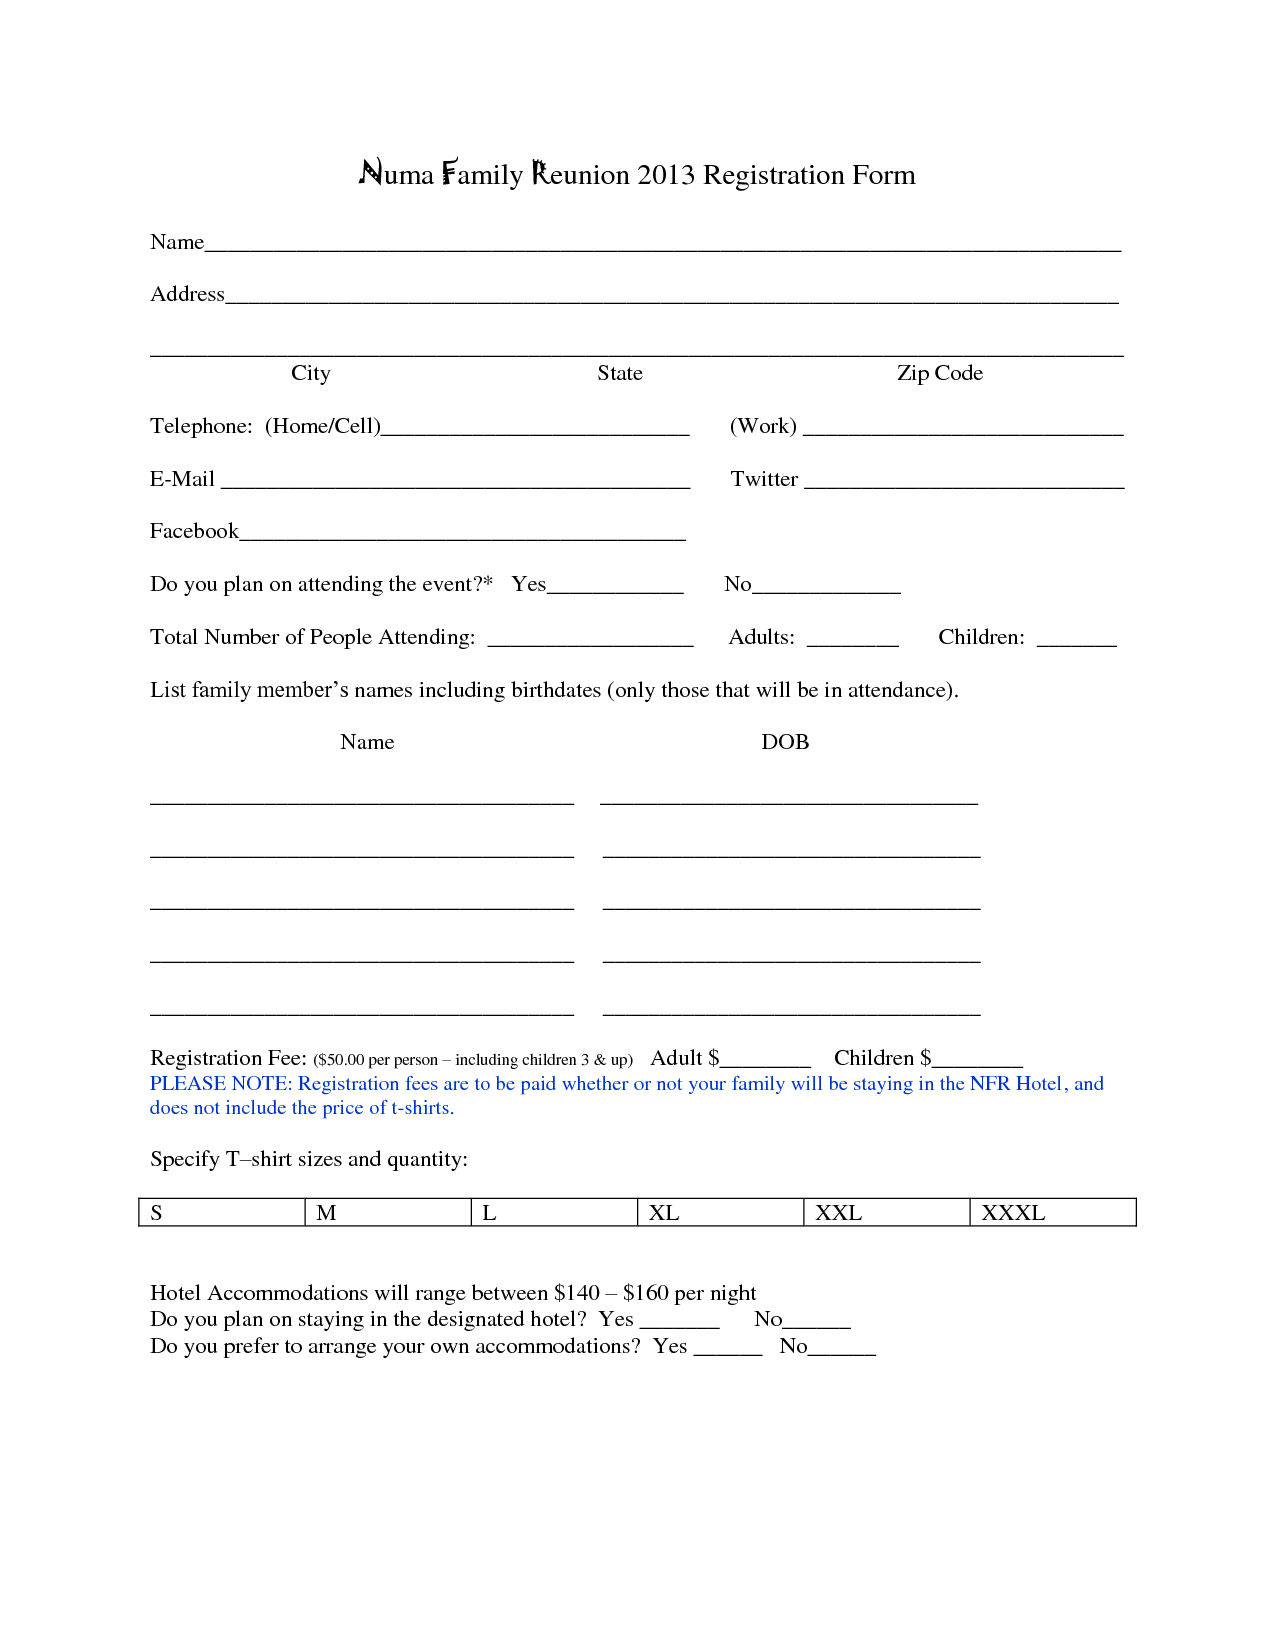 Family Reunion Registration Form Template  Family Reunions